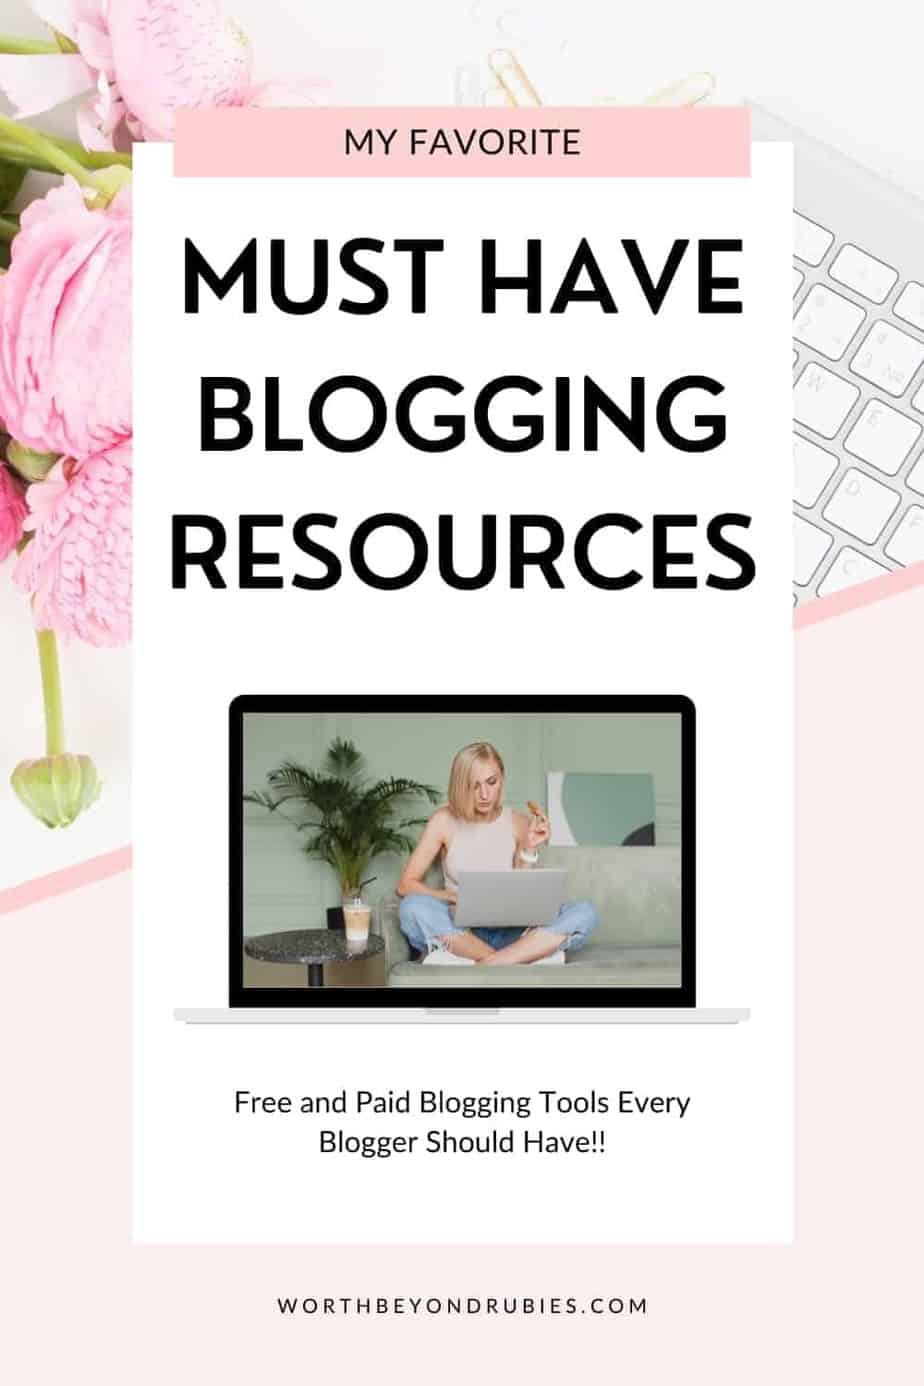 An image of a blonde woman with a pink top sitting on the floor with a laptop on her lap and a text overlay that says My Favorite Blogging Resources for Faith Bloggers with a backdrop of a white keyboard and pink flowers